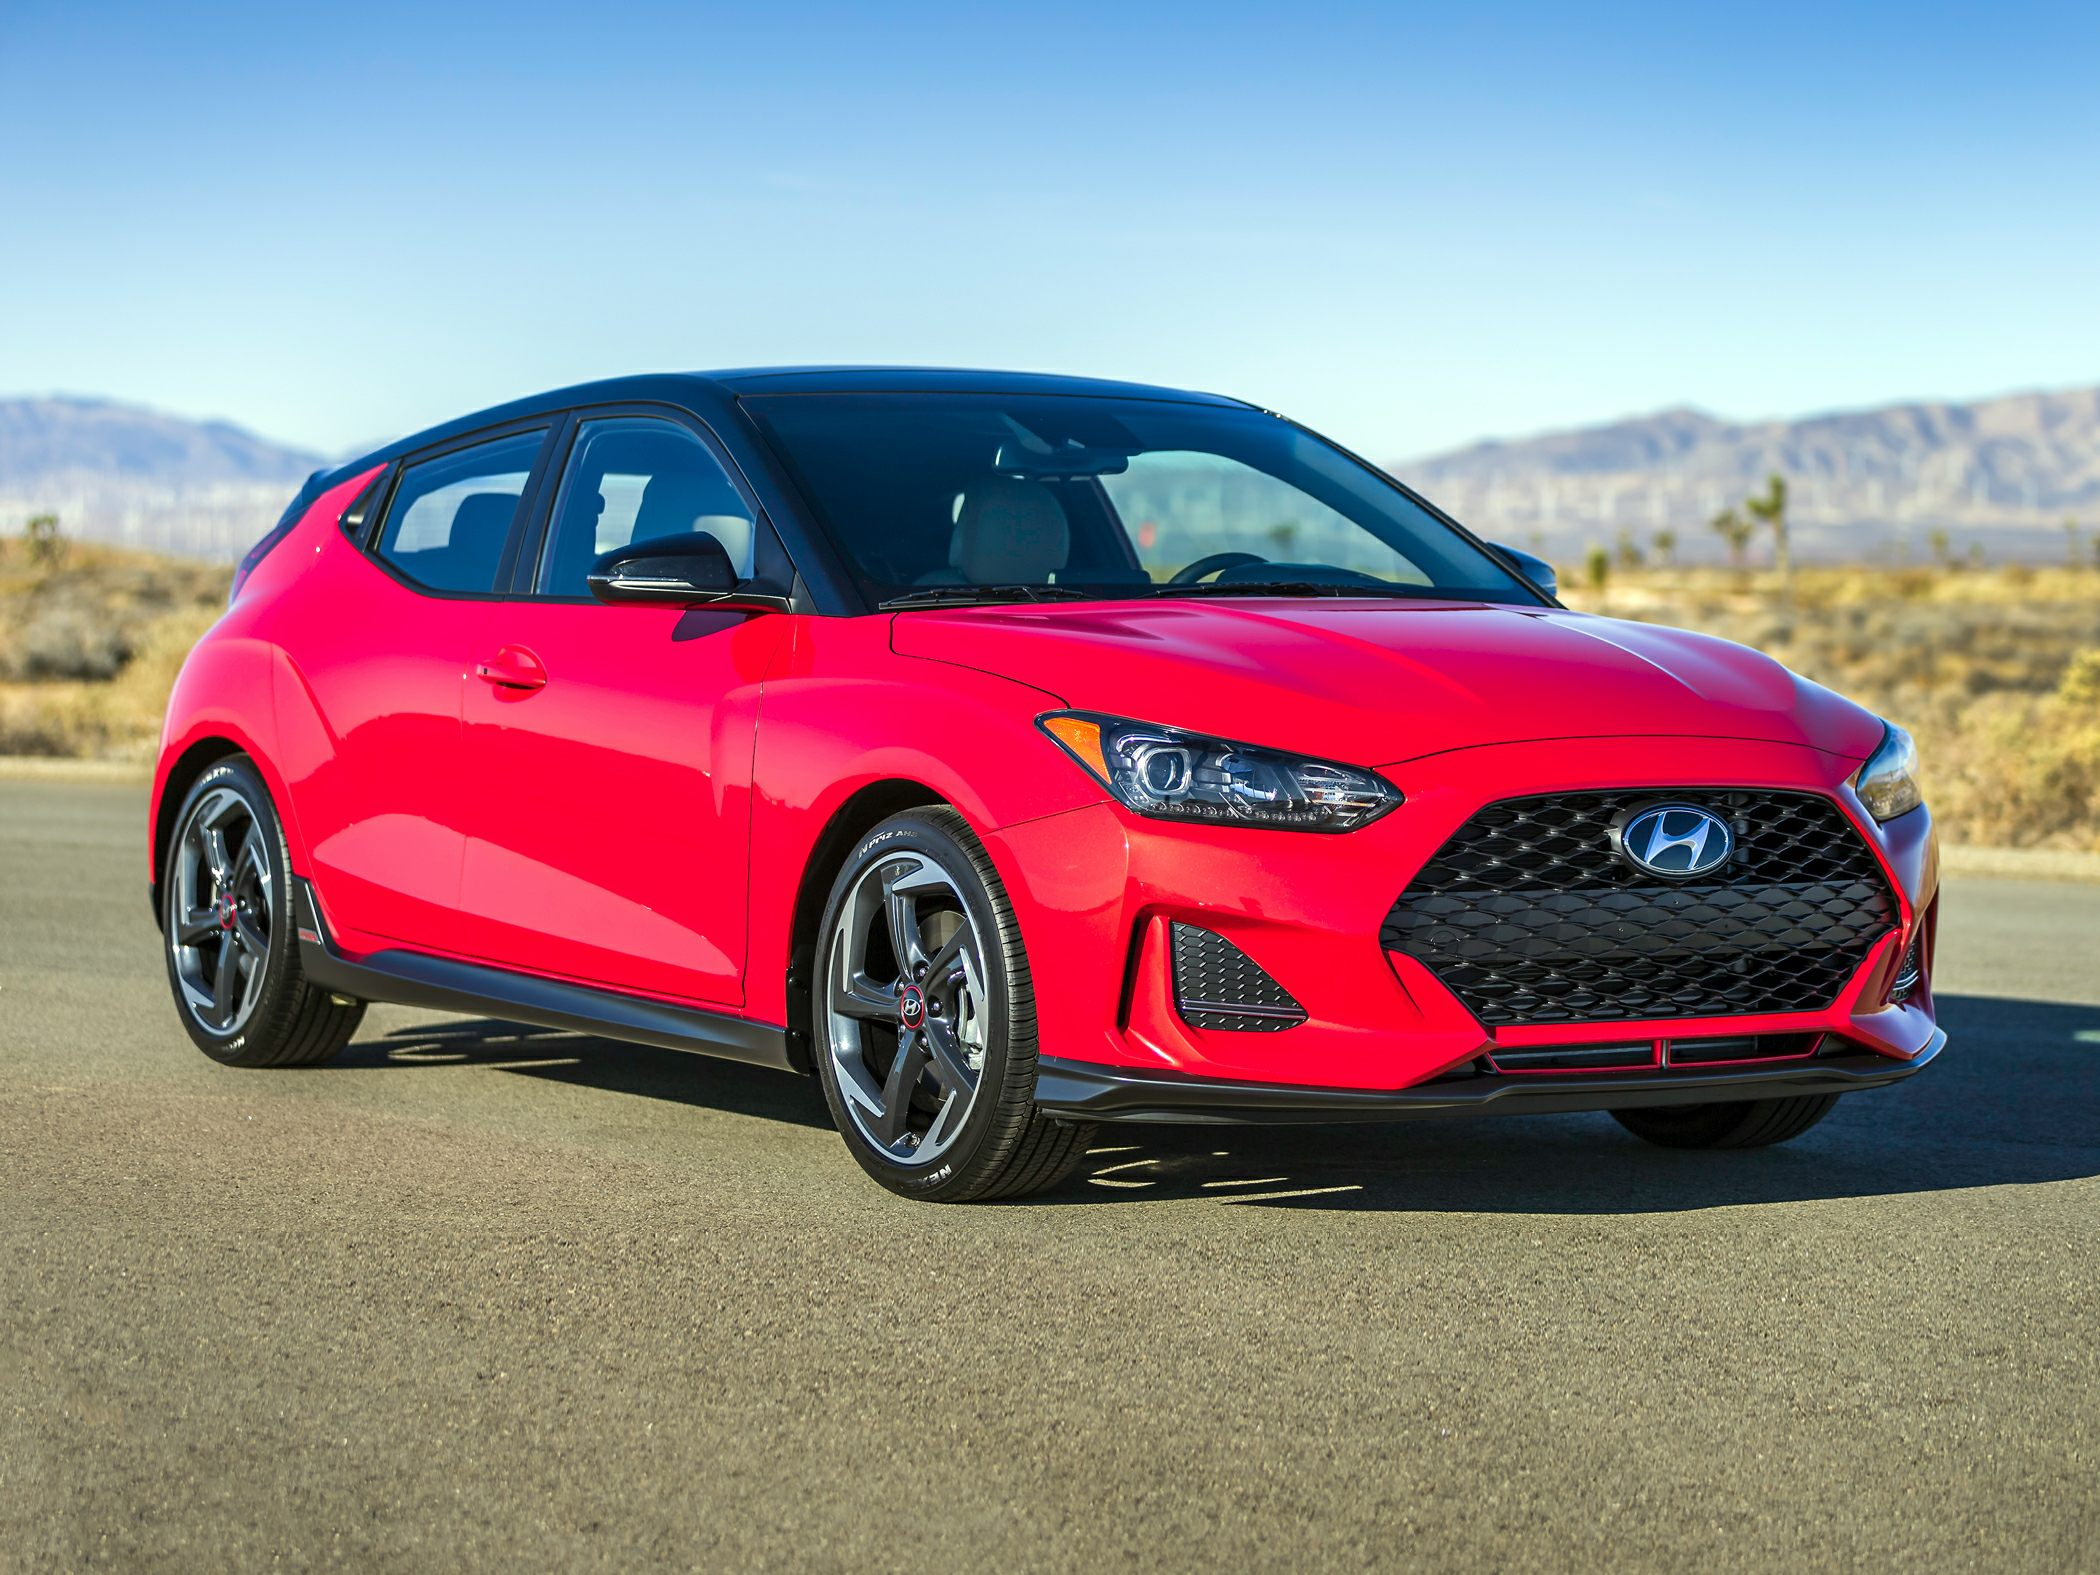 2021 Hyundai Veloster Turbo Specs and Review